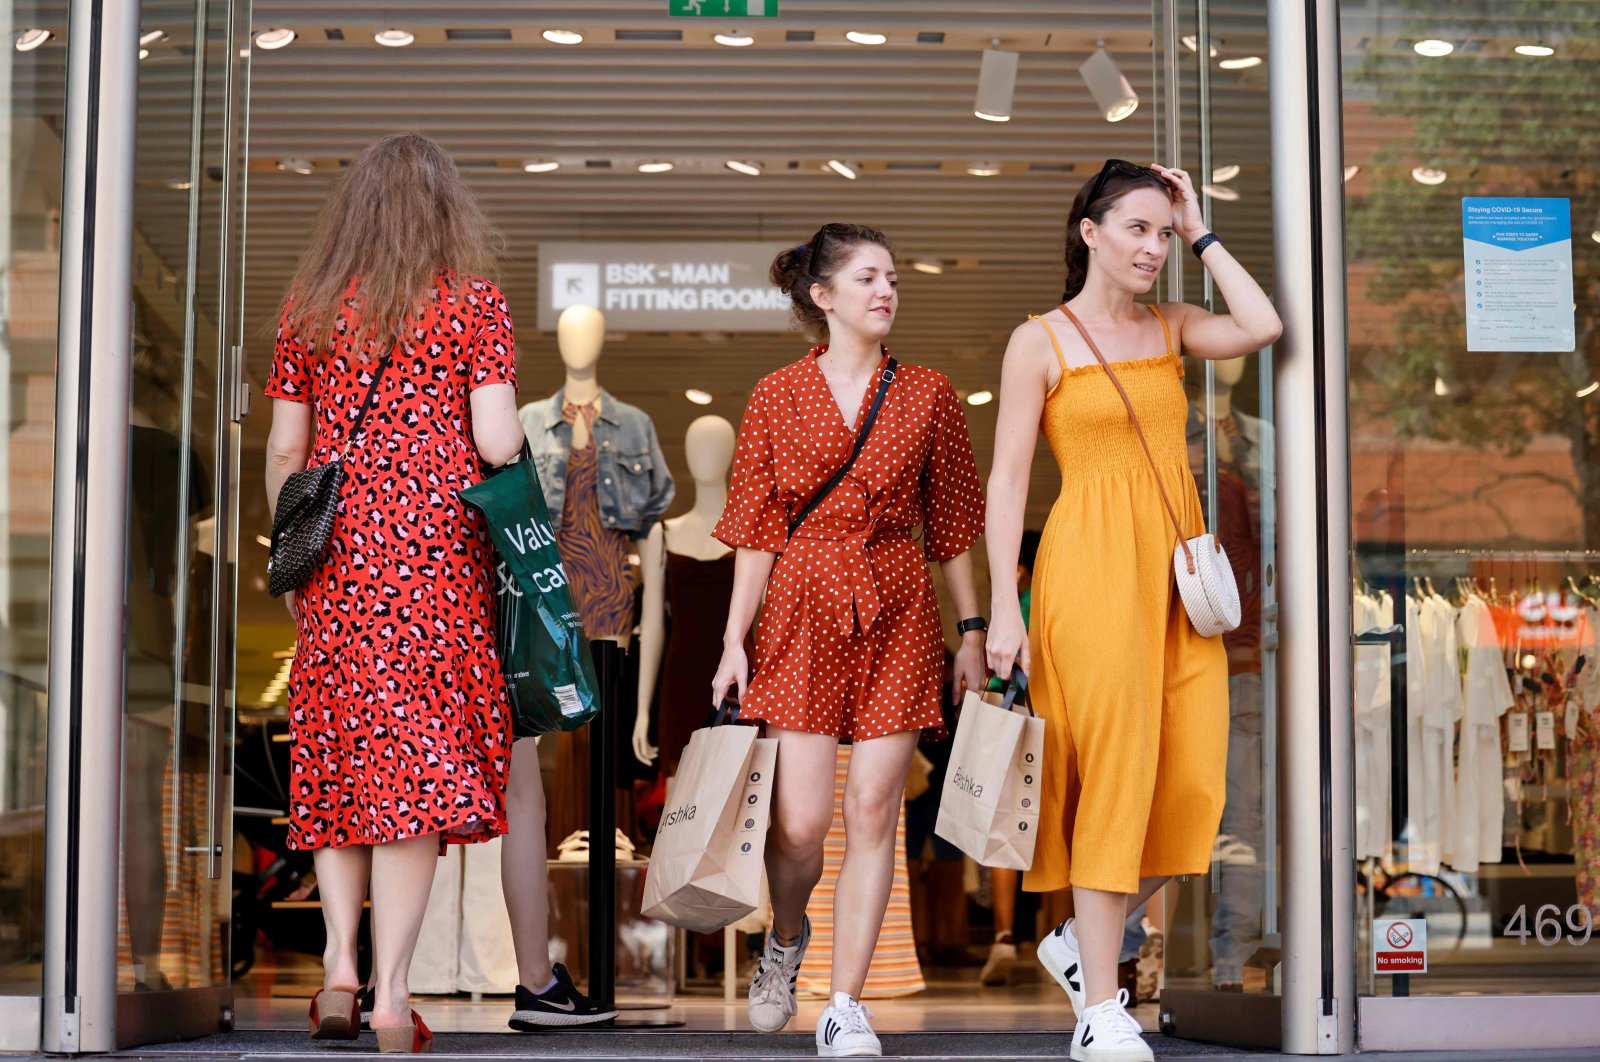 Pedestrians without facemasks shop on Oxford street in central London, United Kingdom, July 19, 2021. (AFP Photo)